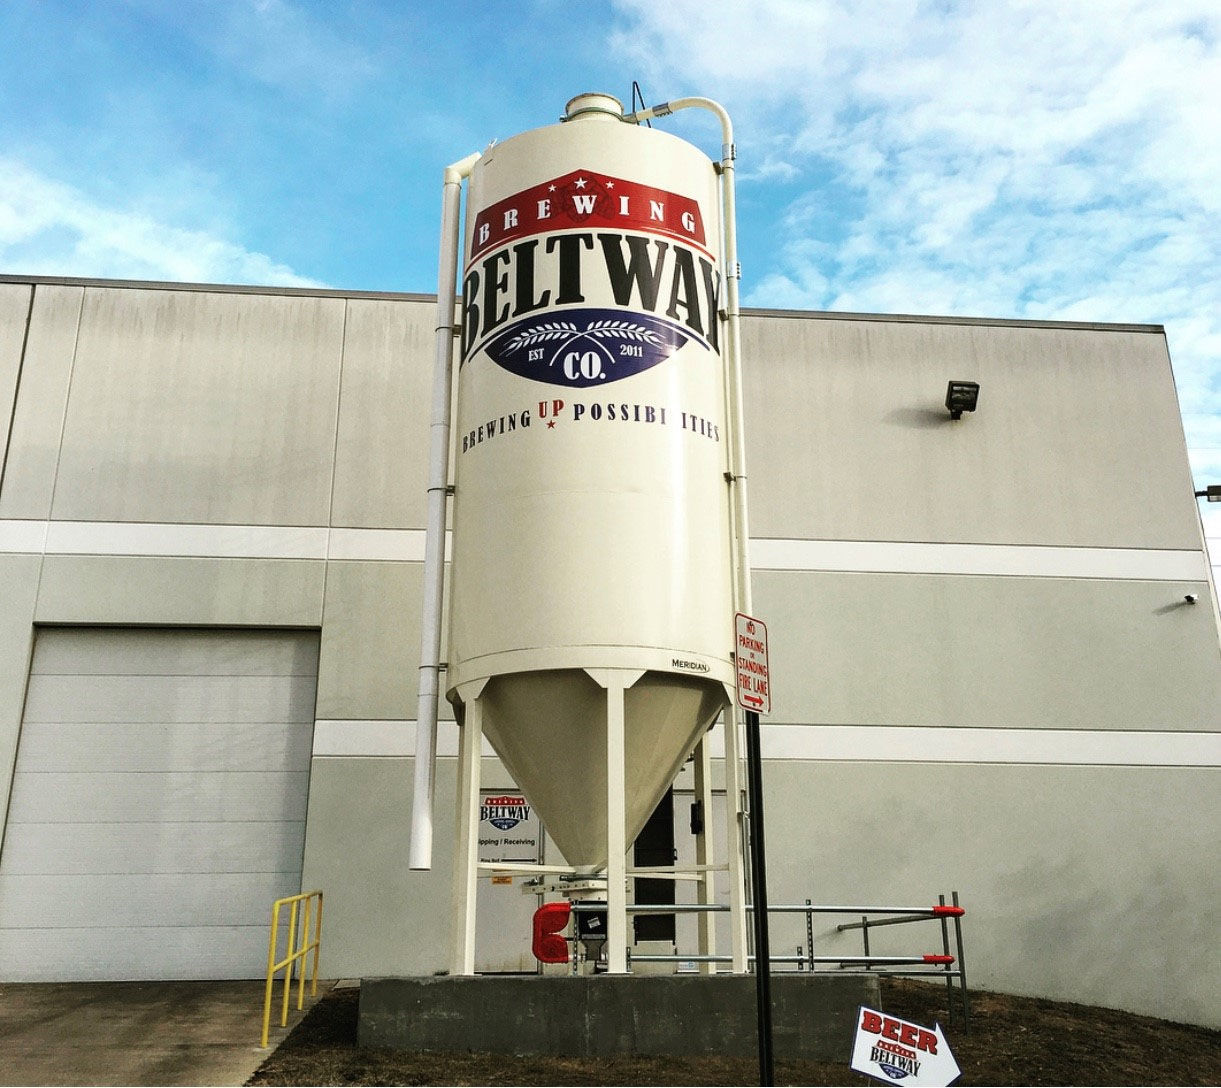 Based in Sterling, Virginia, Beltway Brewing launched in 2013 as a contract, partner and private lable brewing facility. (Courtesy Beltway Brewing)